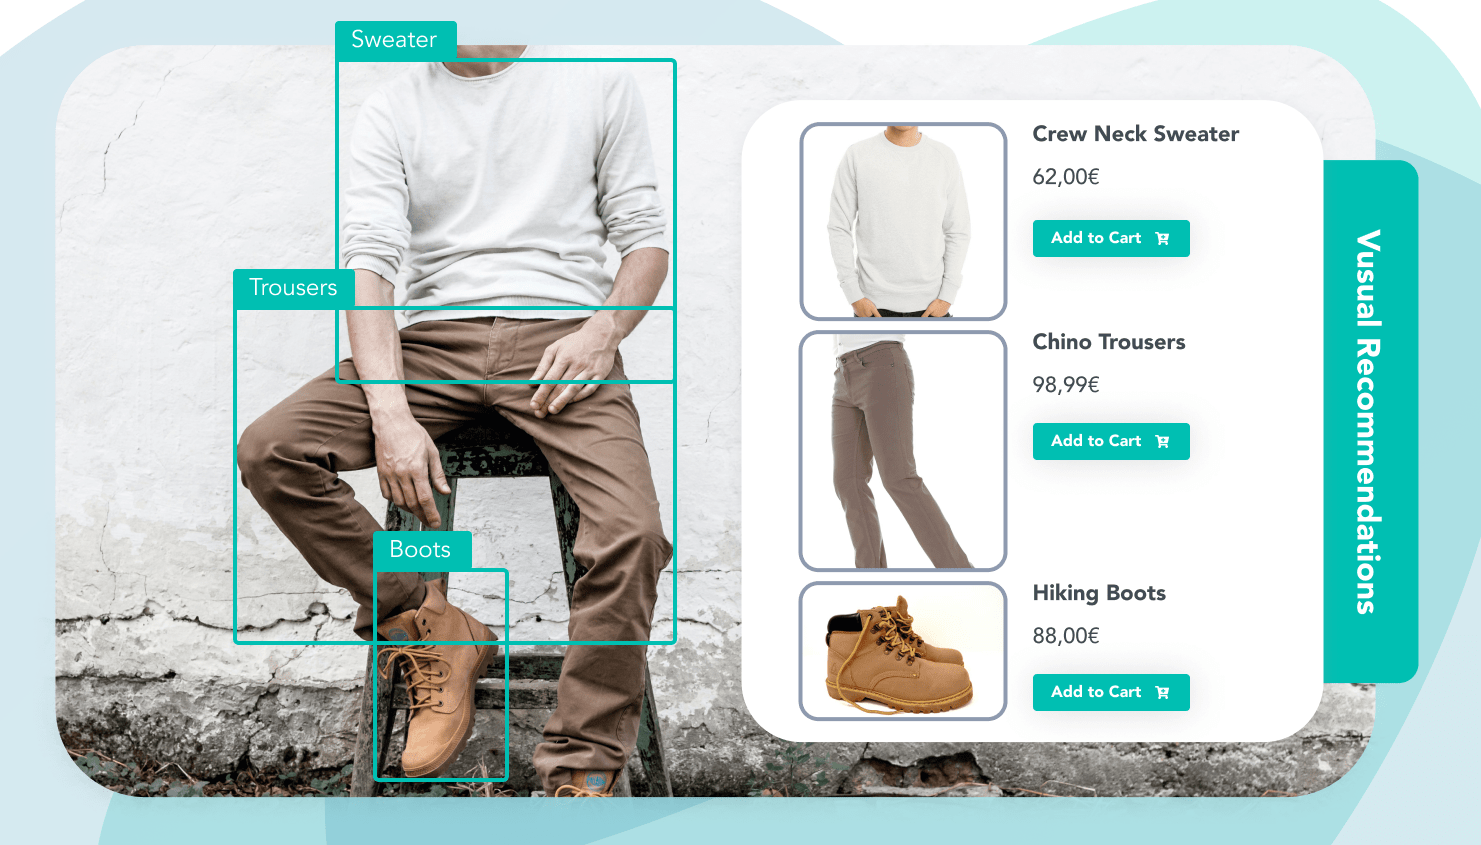 Similar recommendations for a sweater, trousers, and boots